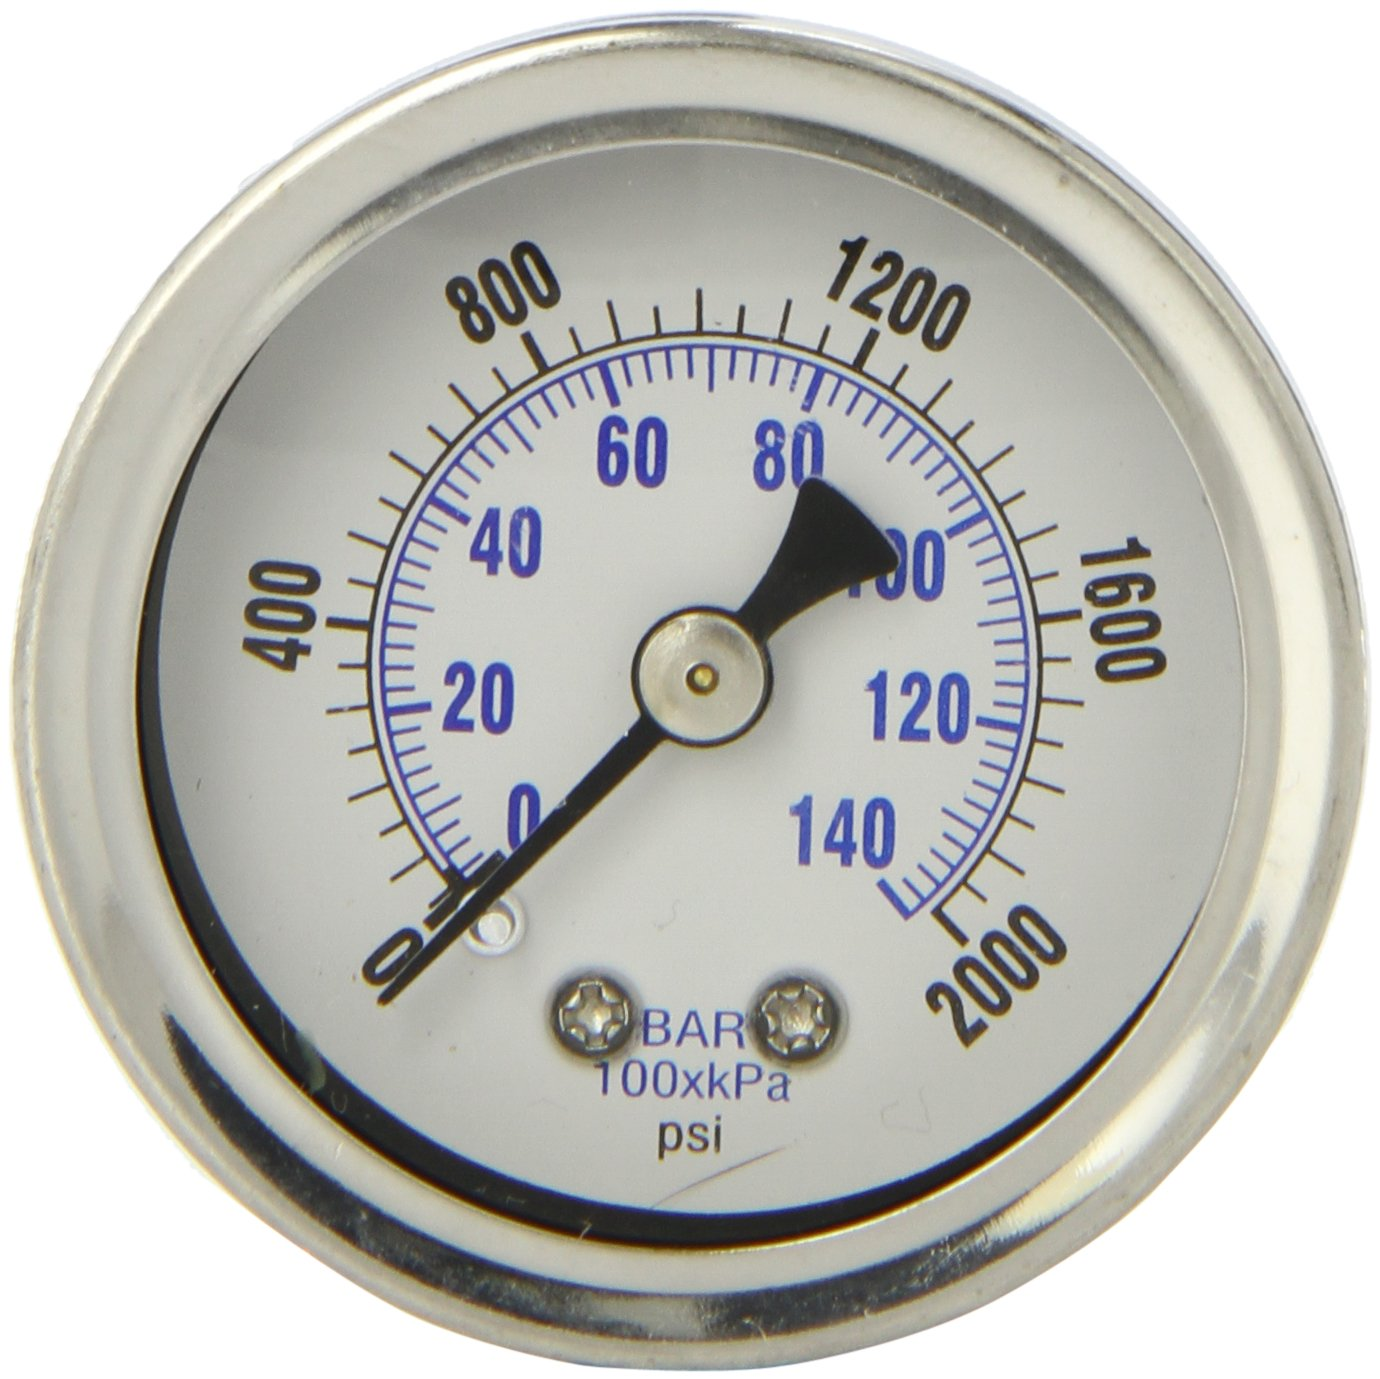 PIC Gauge 202L 158O 1.5 Dial 0 2000 psi Range 1 8 Male NPT Connection Size Center Back Mount Glycerine Filled Pressure Gauge with a Stainless Steel Case Brass Internals Stainless Steel Bezel and Polycarbonate Lens